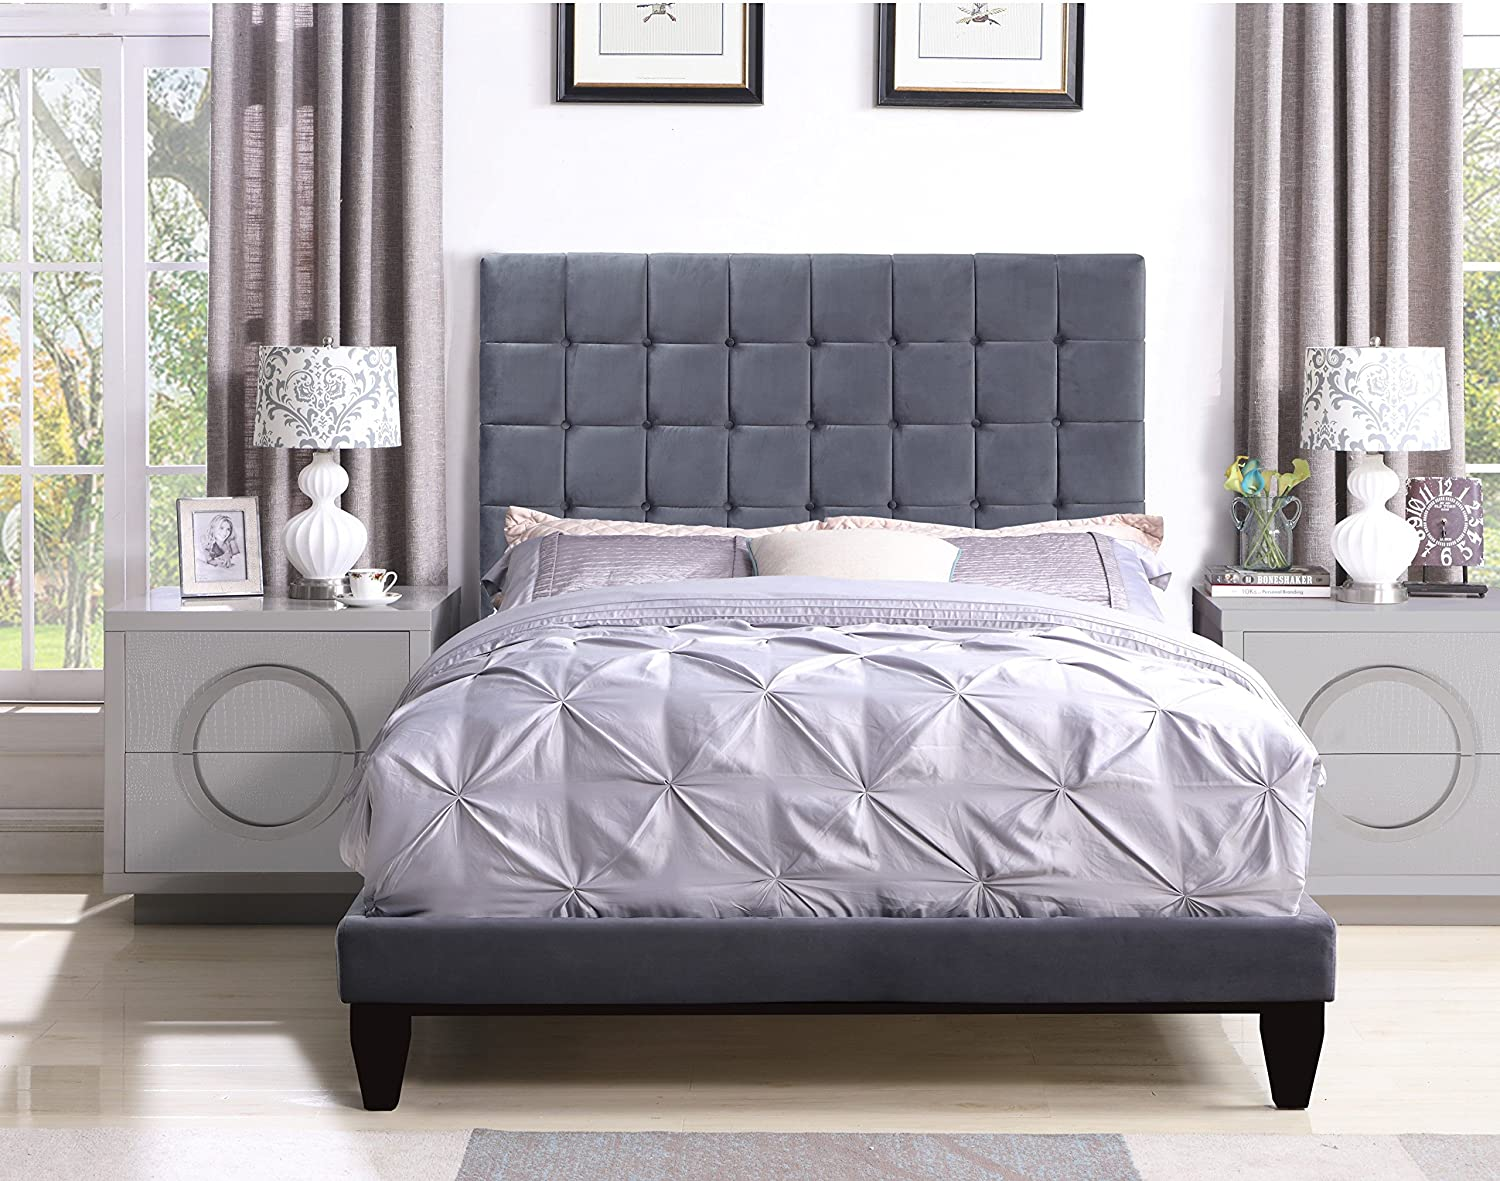 Iconic Home Beethoven Bed Frame with Headboard Velvet Upholstered Button Tufted Tapered Birch Legs Modern Transitional, King, Grey